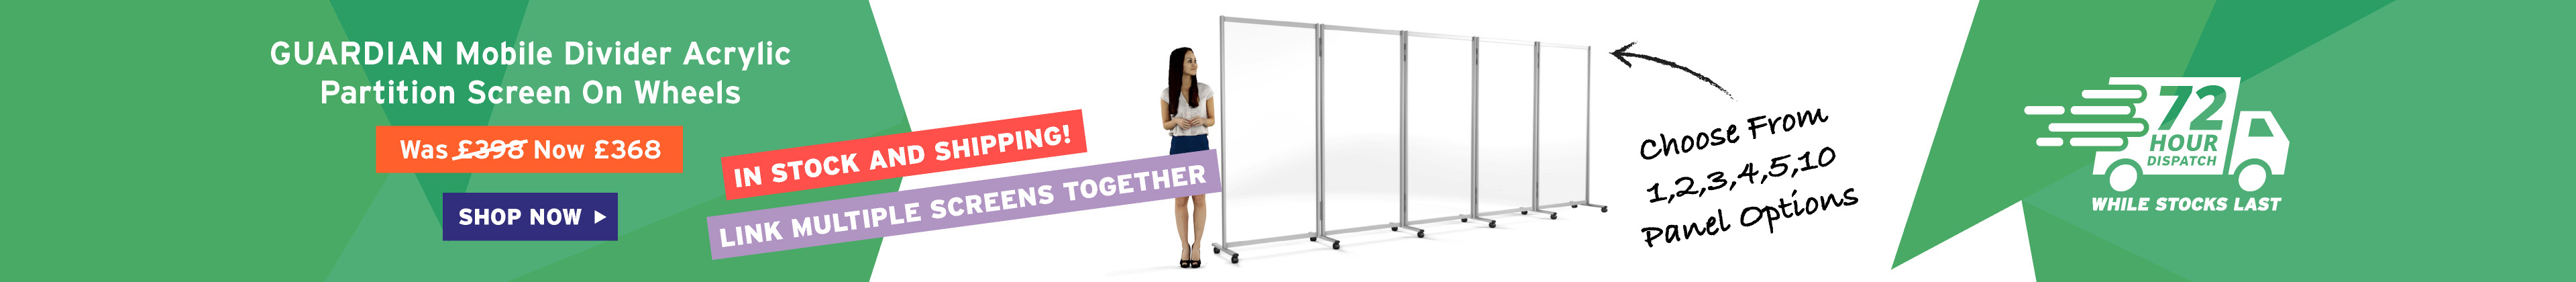 Guardian-Screens-On-Wheels-Mobile-Perspex-Screens-From-XL-Displays